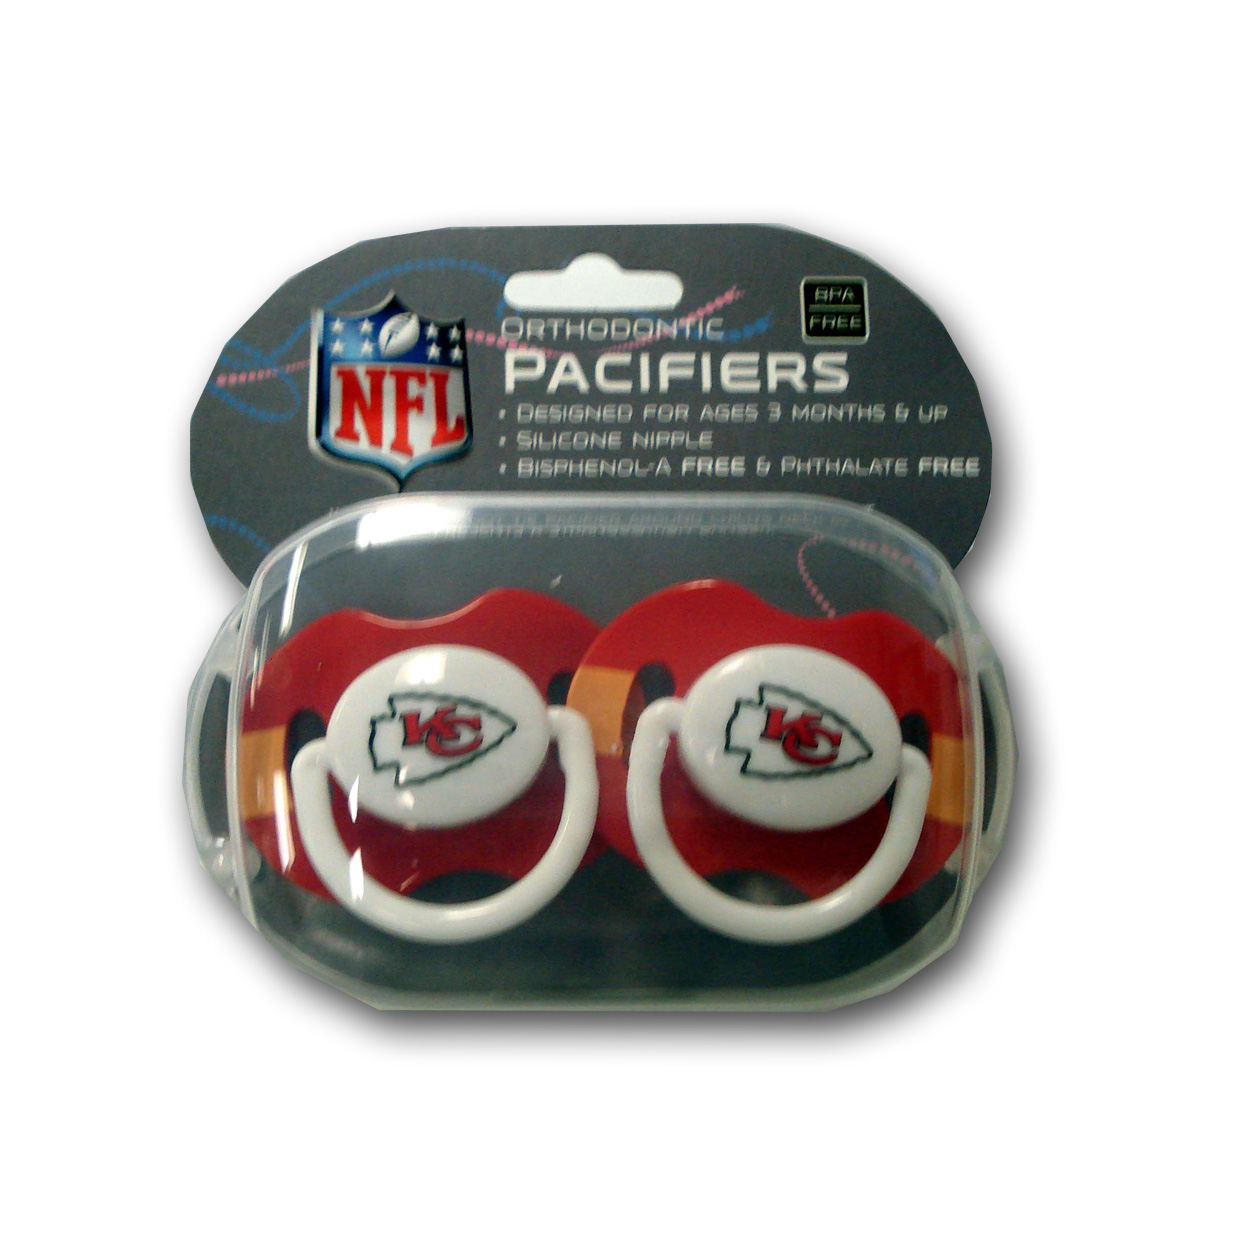 Baby Fanatic 2 pack Pacifiers  -  Kansa City Chiefs